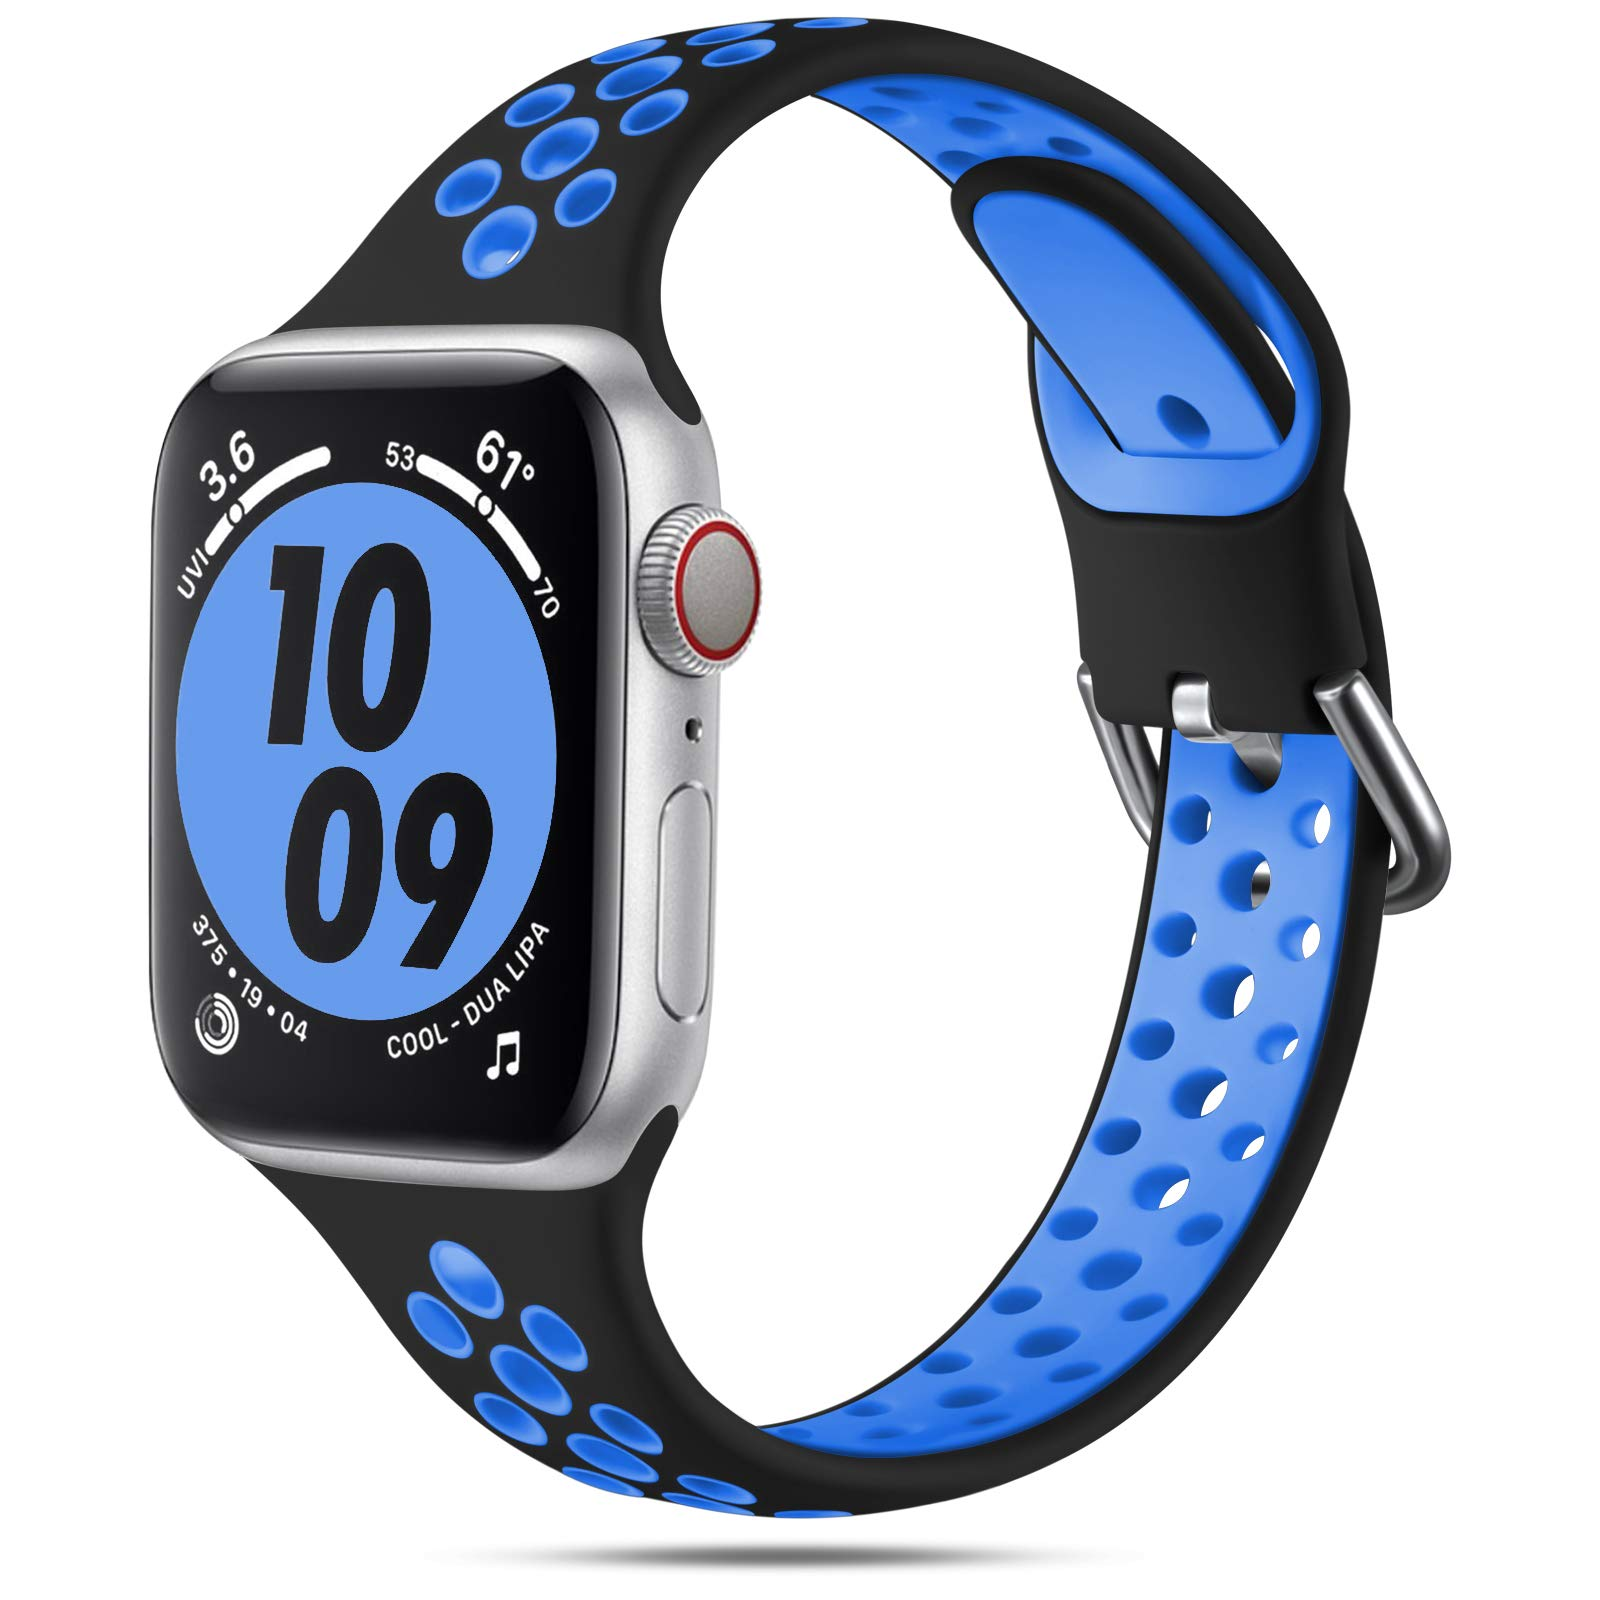 Henva Compatible with Apple Watch Band 38mm 40mm for Women Girls, Slim Soft Breathable Silicone Sport Band with Air Holes Compatible for iWatch Series SE/6/5/4/3/2/1, Black/Blue